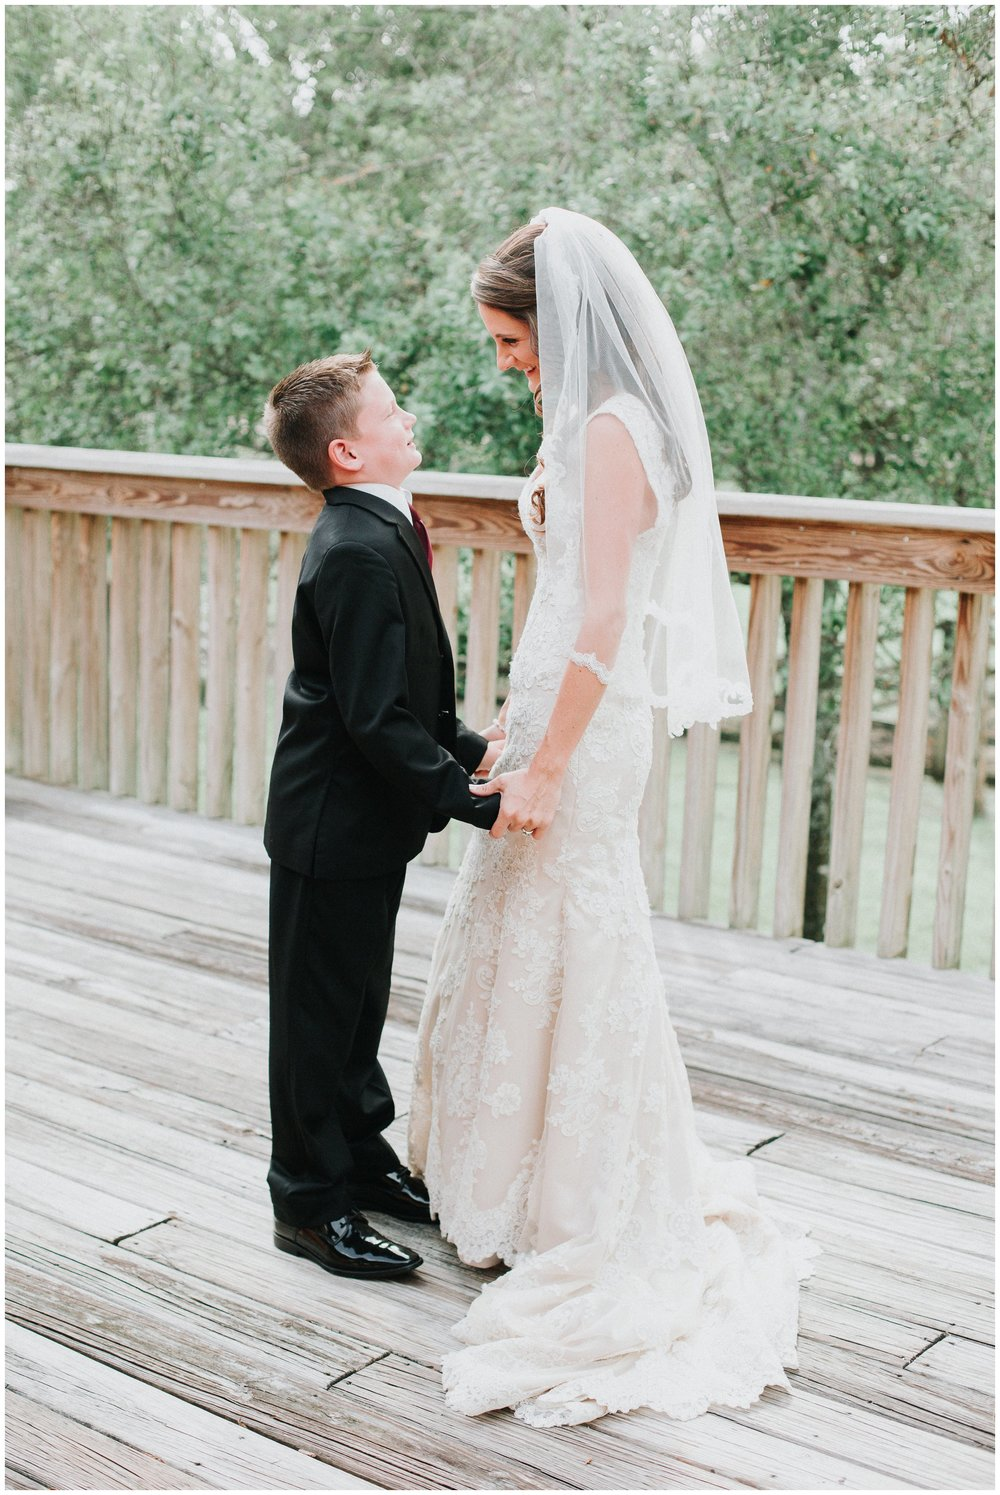 The bride with her sweet son. As a mom, this photo melts my heart!